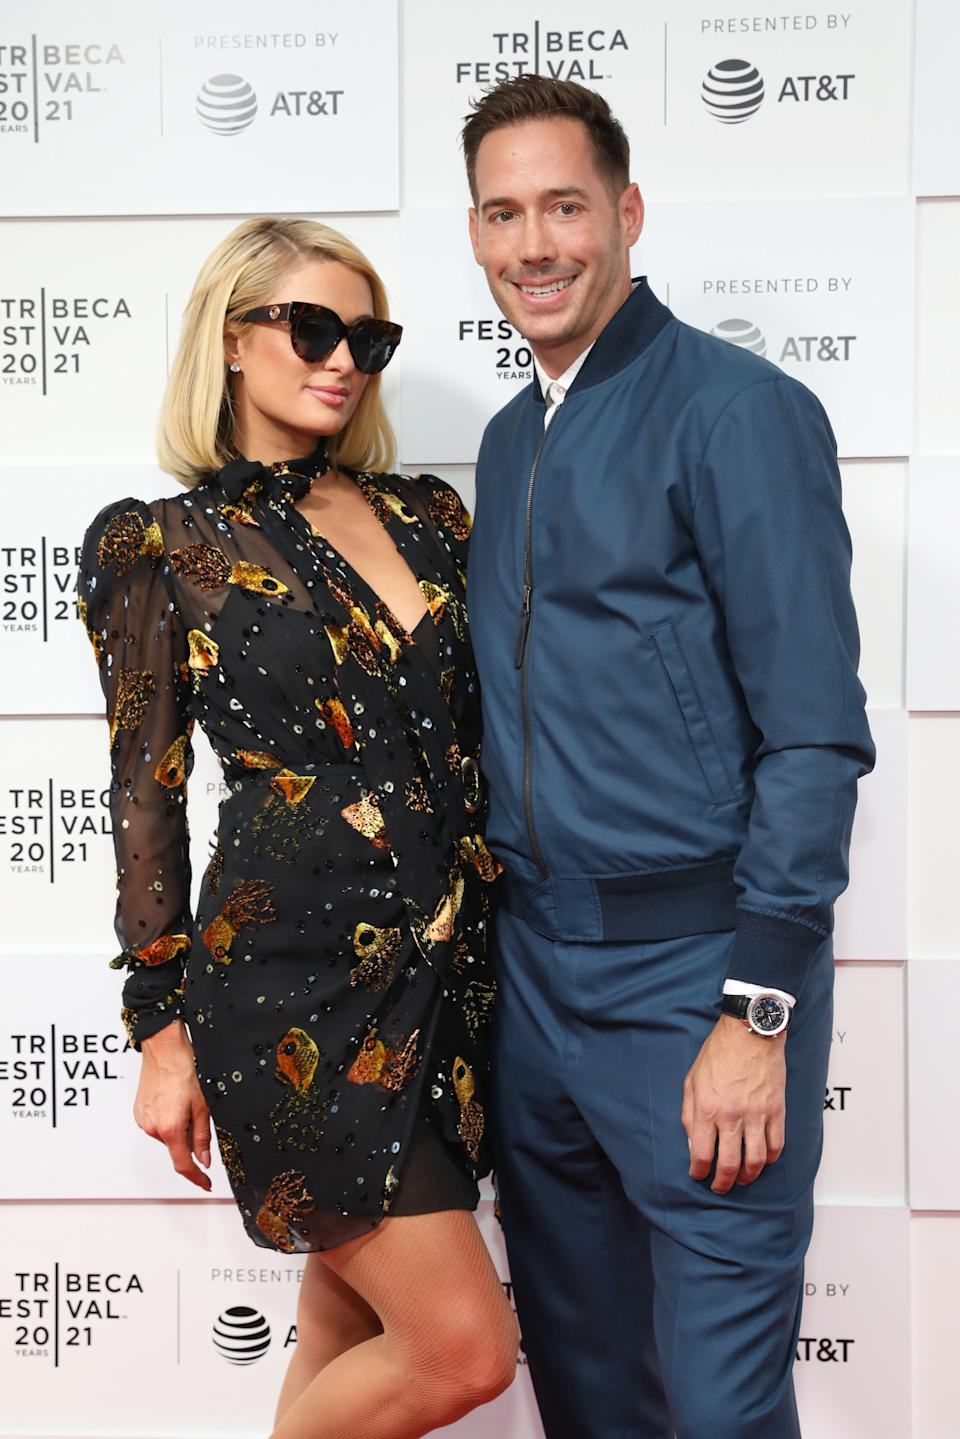 Paris Hilton (L) and Carter Reum got engaged earlier this year. (Photo by Monica Schipper/Getty Images)